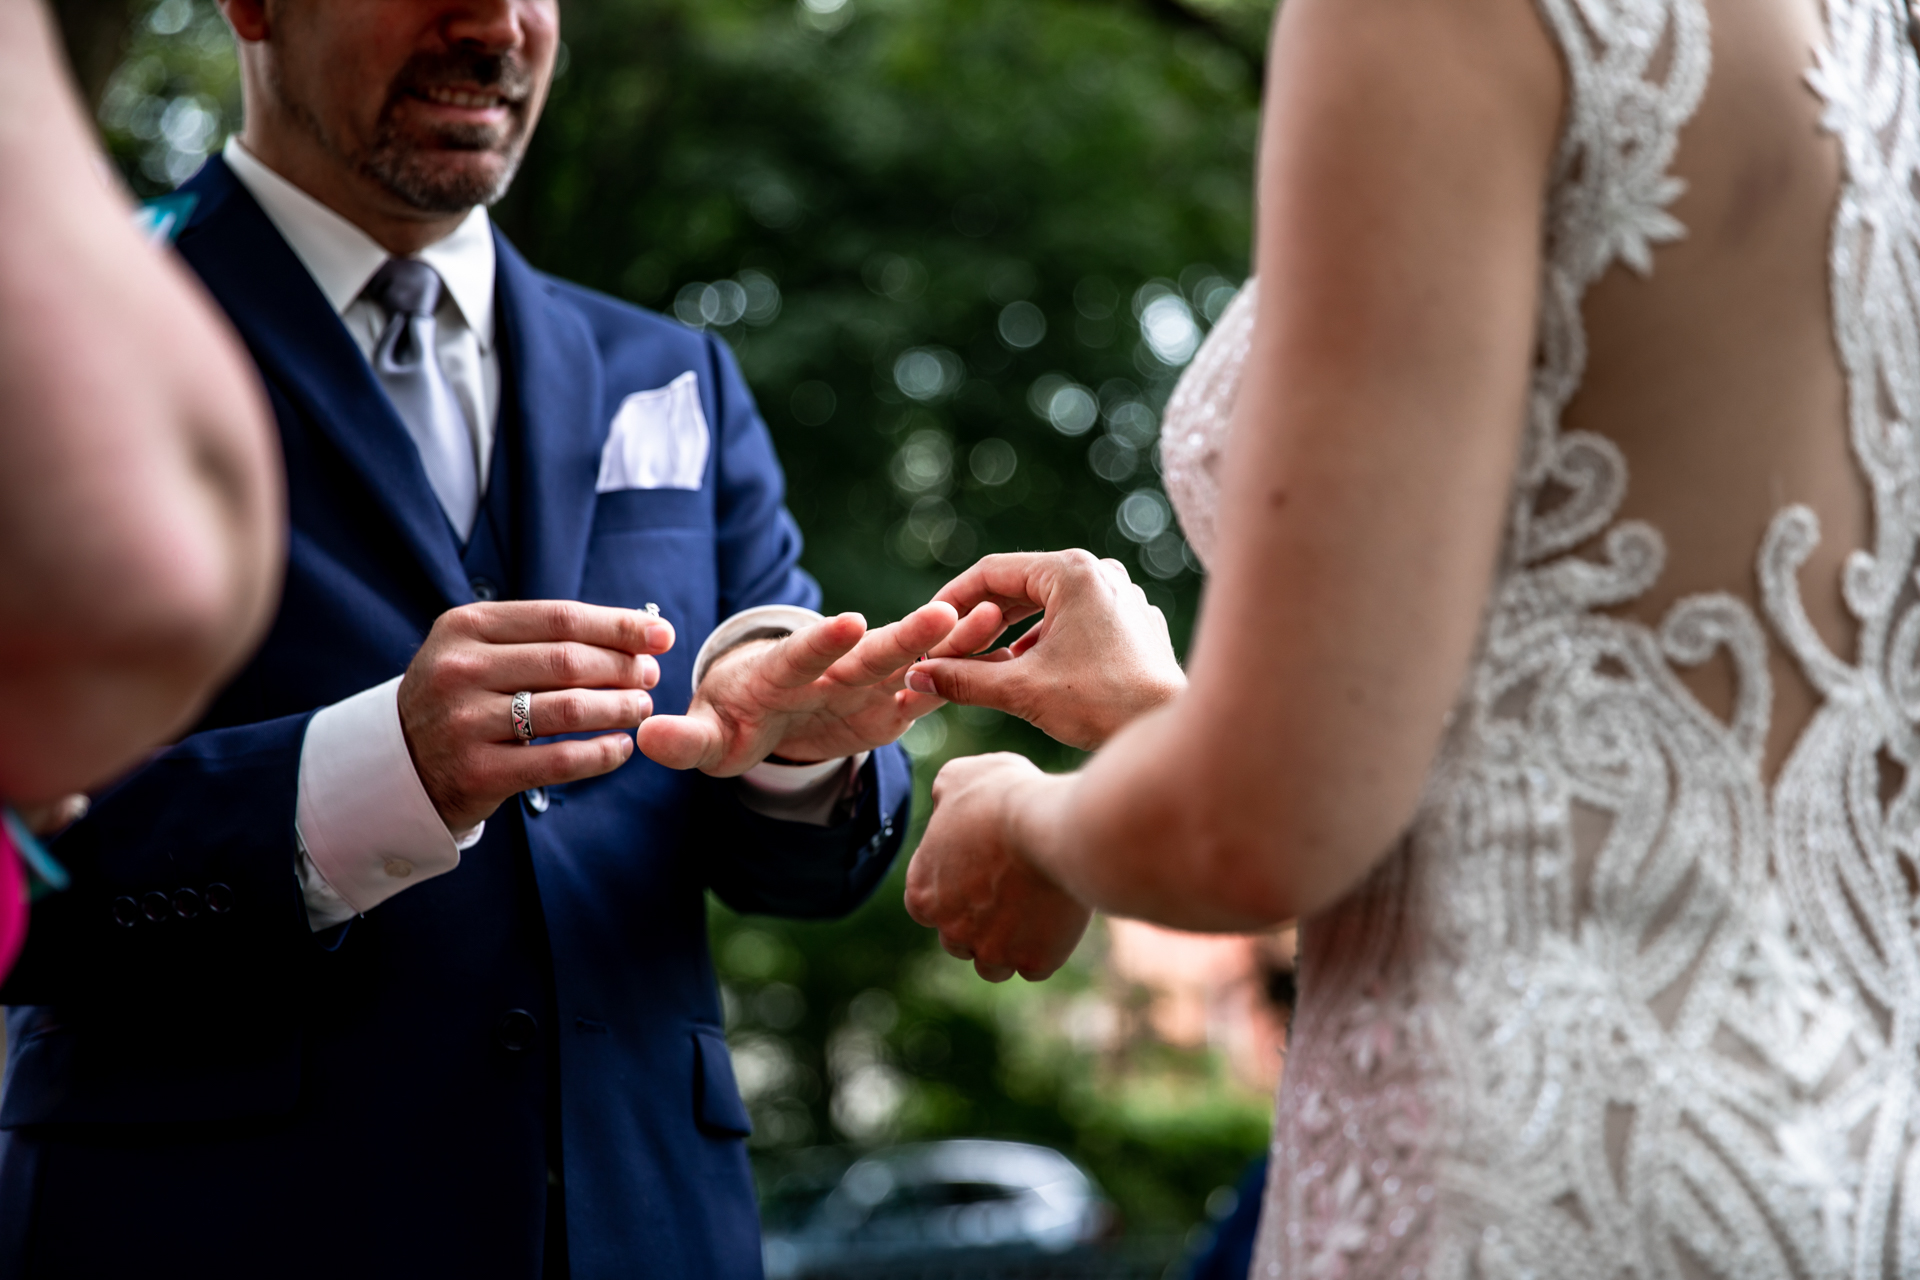 Summit Manor Outdoor Wedding Ceremony Venue Image | The ring exchange in the garden event